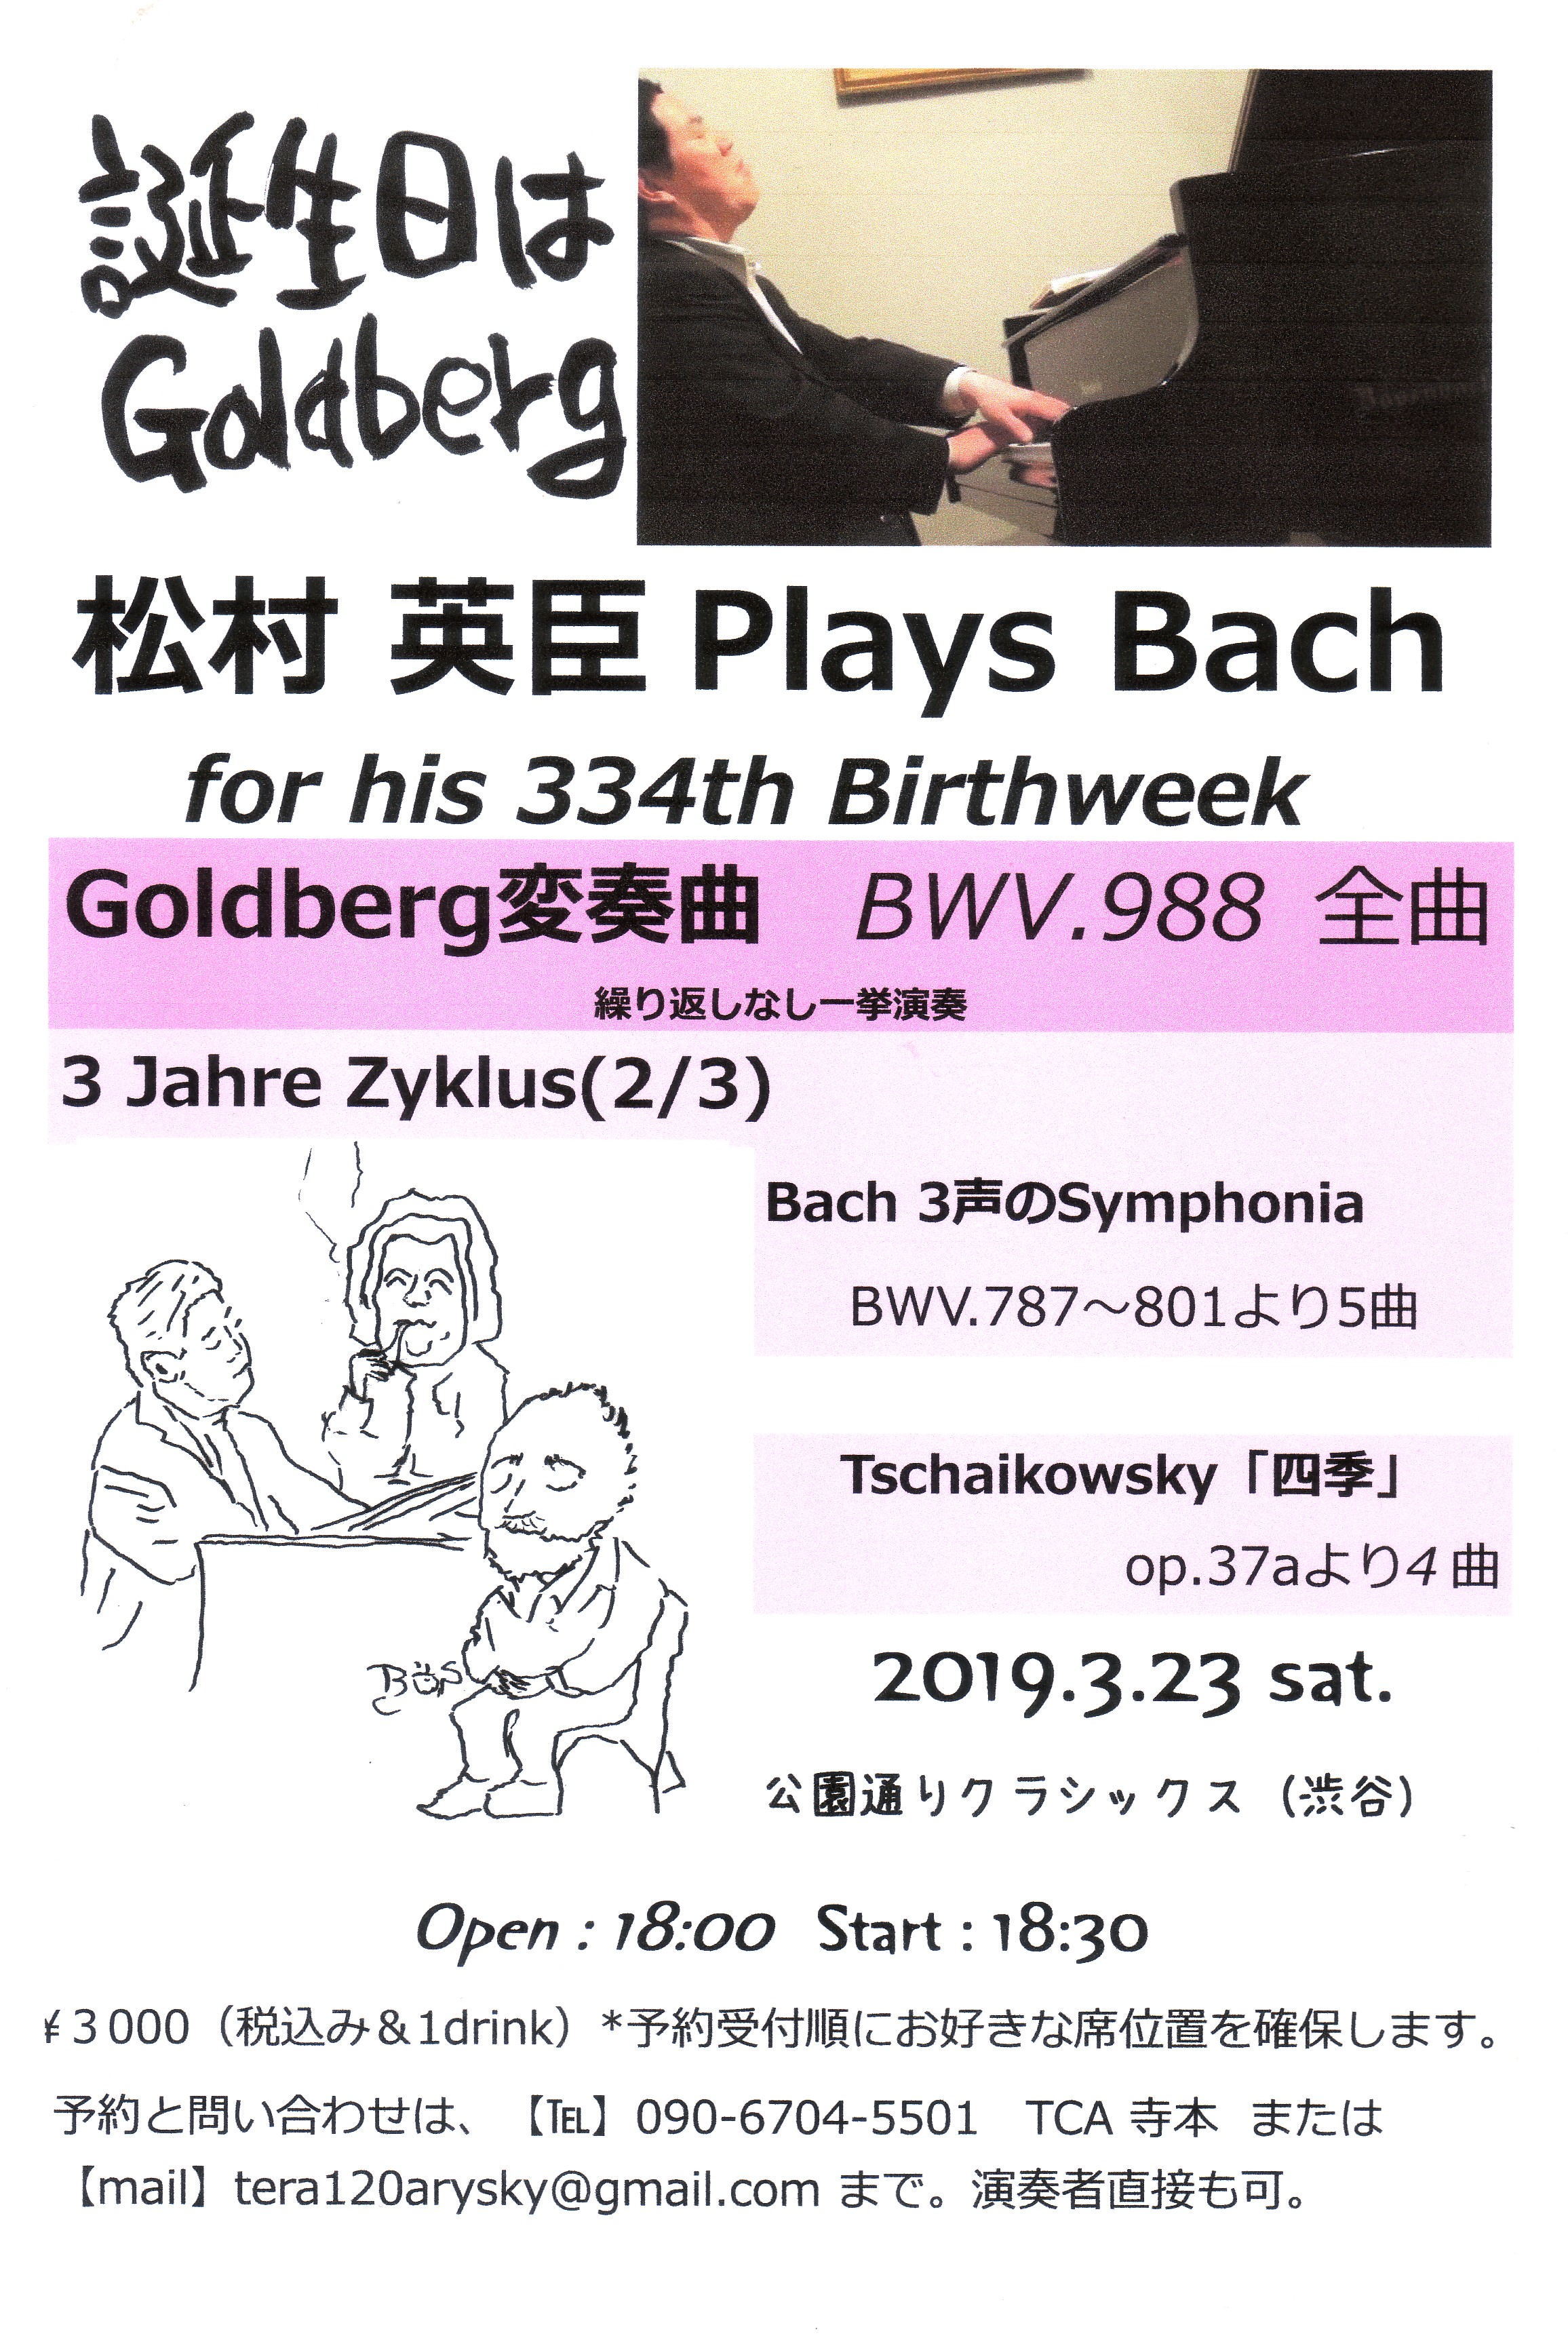 誕生日はGoldberg -松村英臣Plays Bach for his 334th Birthweek-